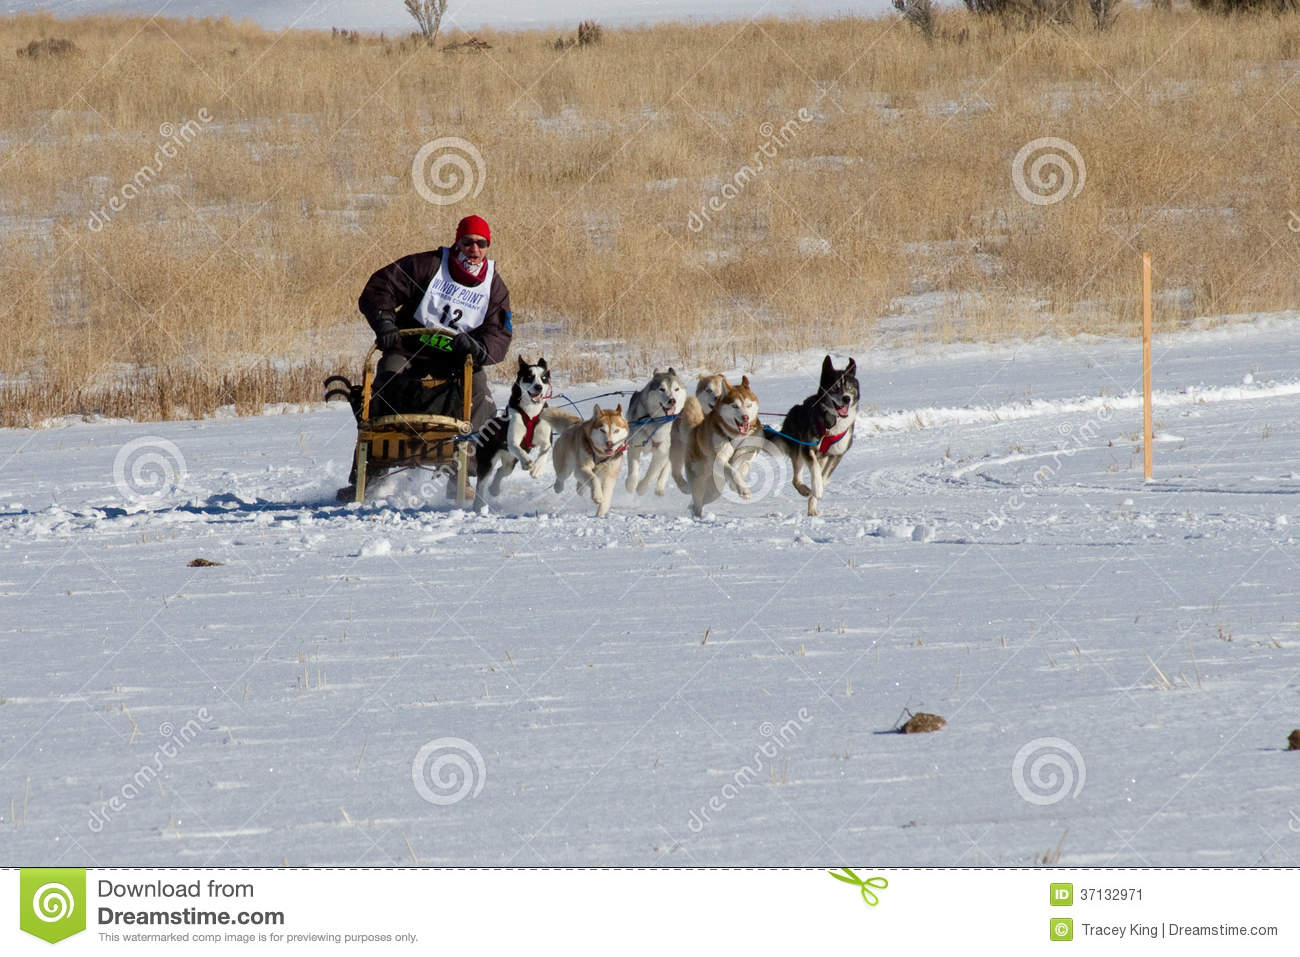 Concurrent de Rocky Mountain Sled Dog Championships